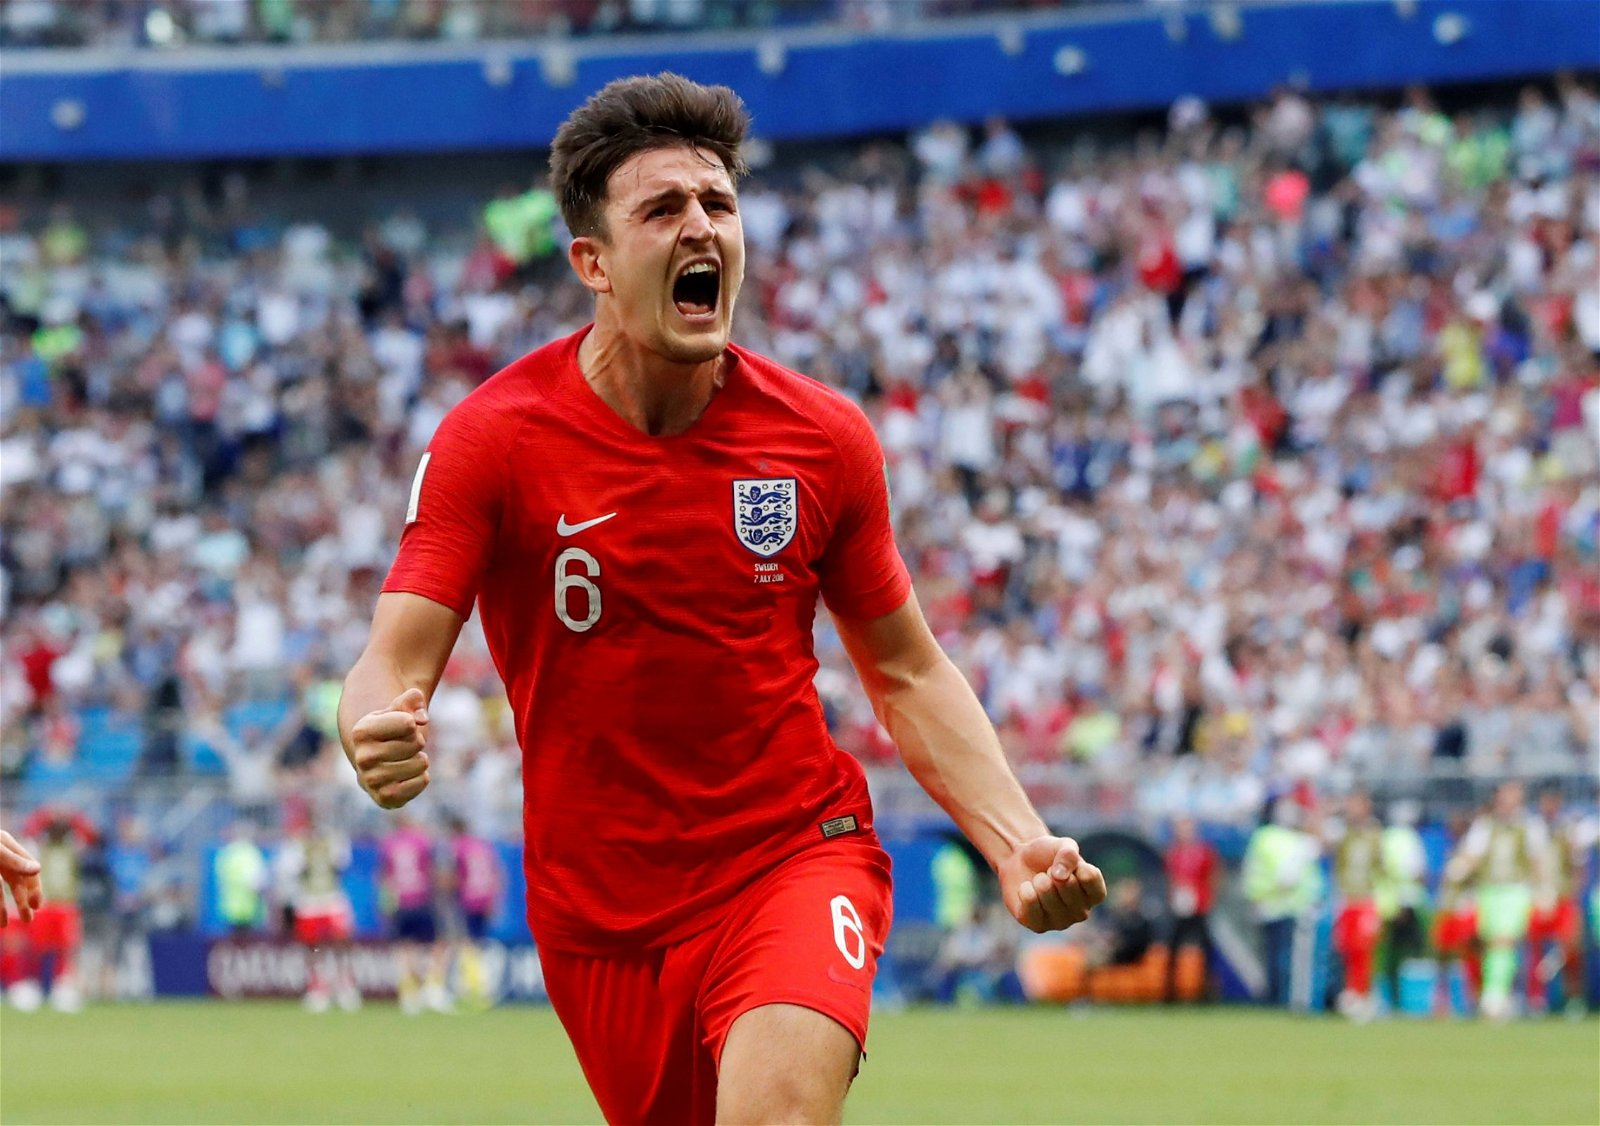 Harry Maguire celebrates scoring for England against Sweden at the World Cup